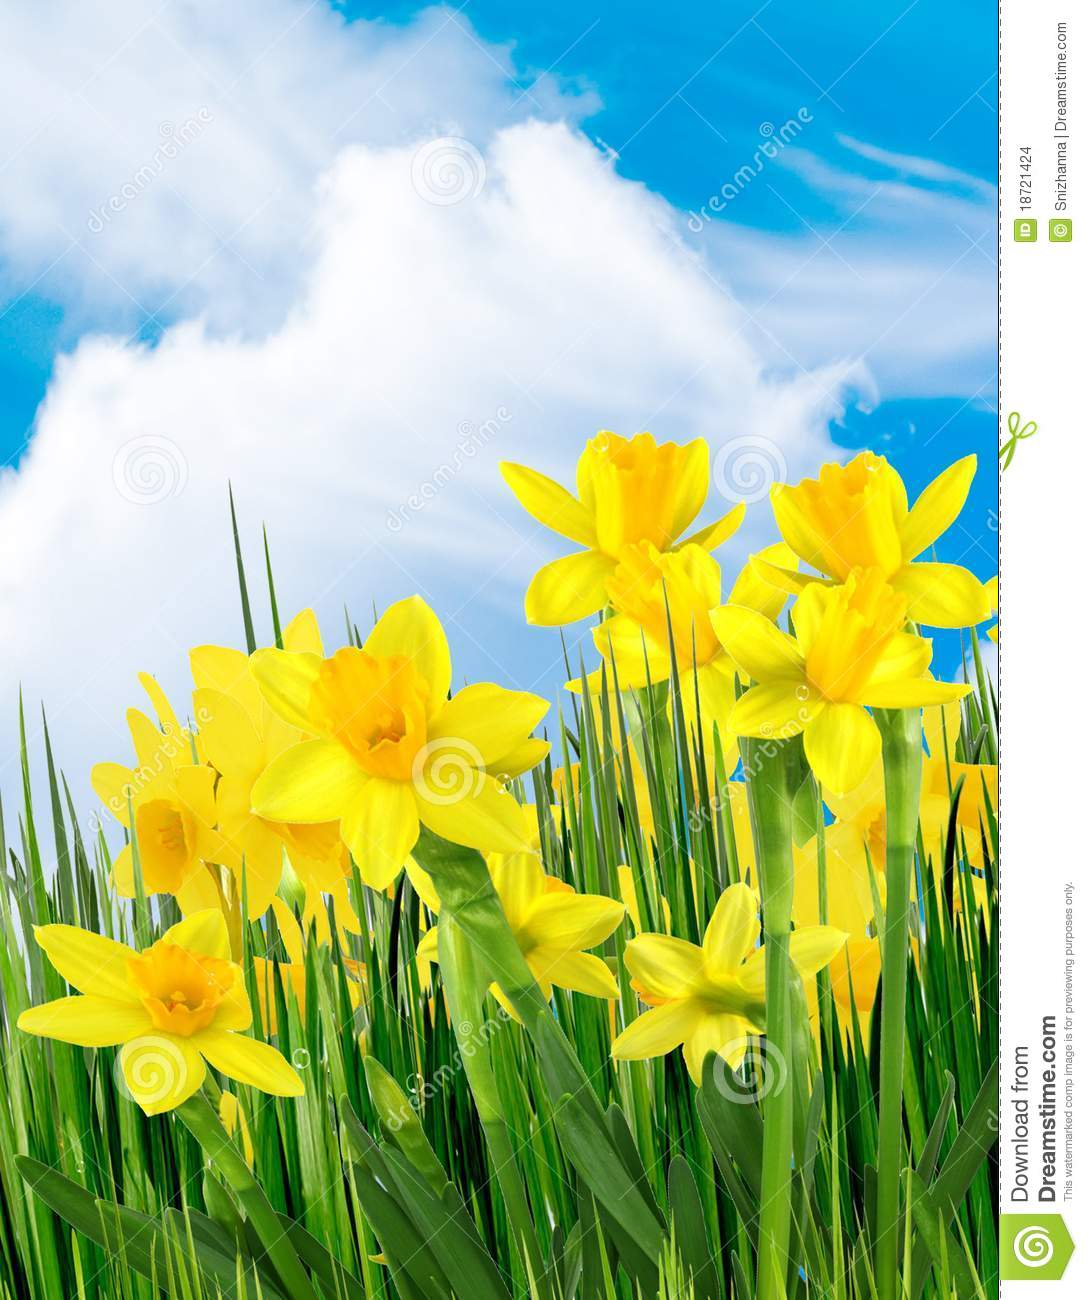 Spring yellow flowers stock photo. Image of cloud, outdoor ...